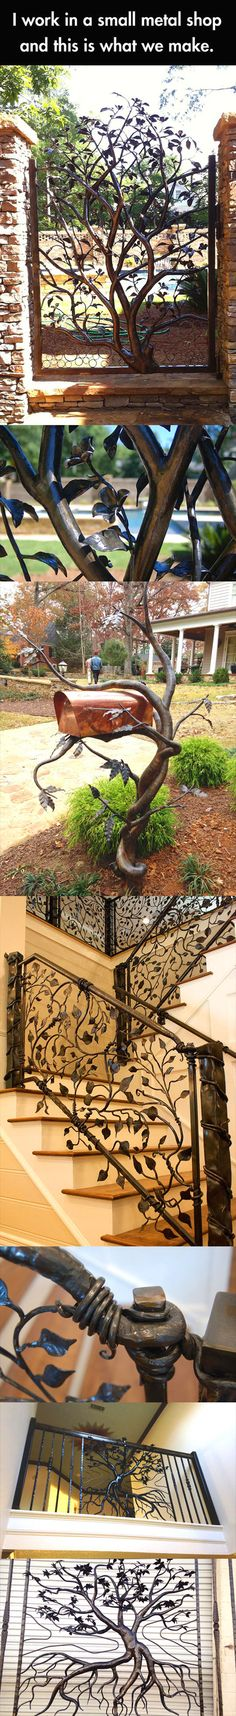 This incredible metal work would make a memorable entry to the front door from the street.